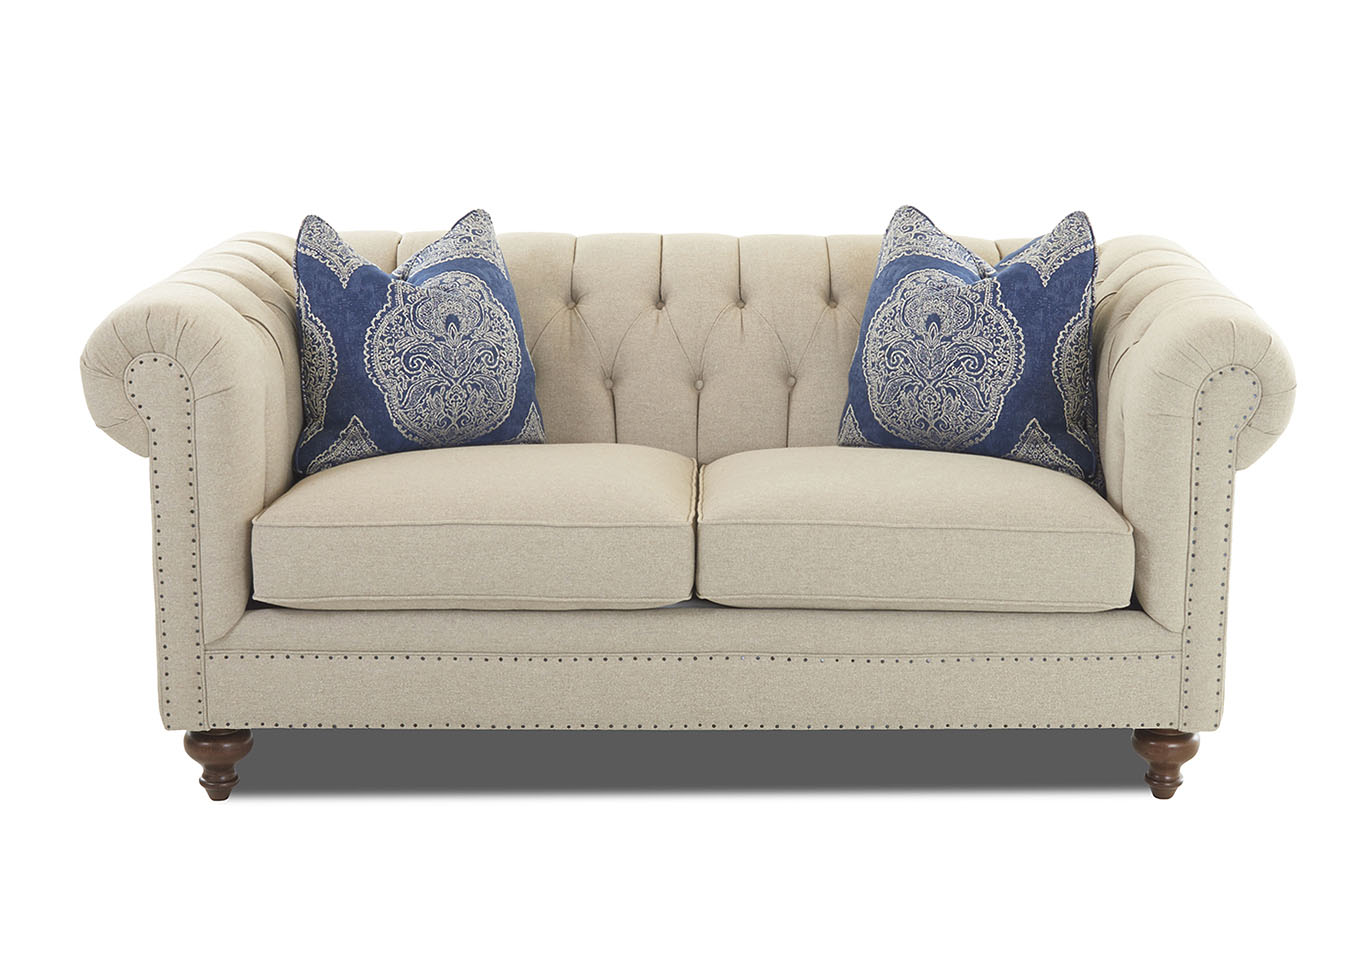 Charlotte Emma Beige Fabric Sofa,Klaussner Home Furnishings